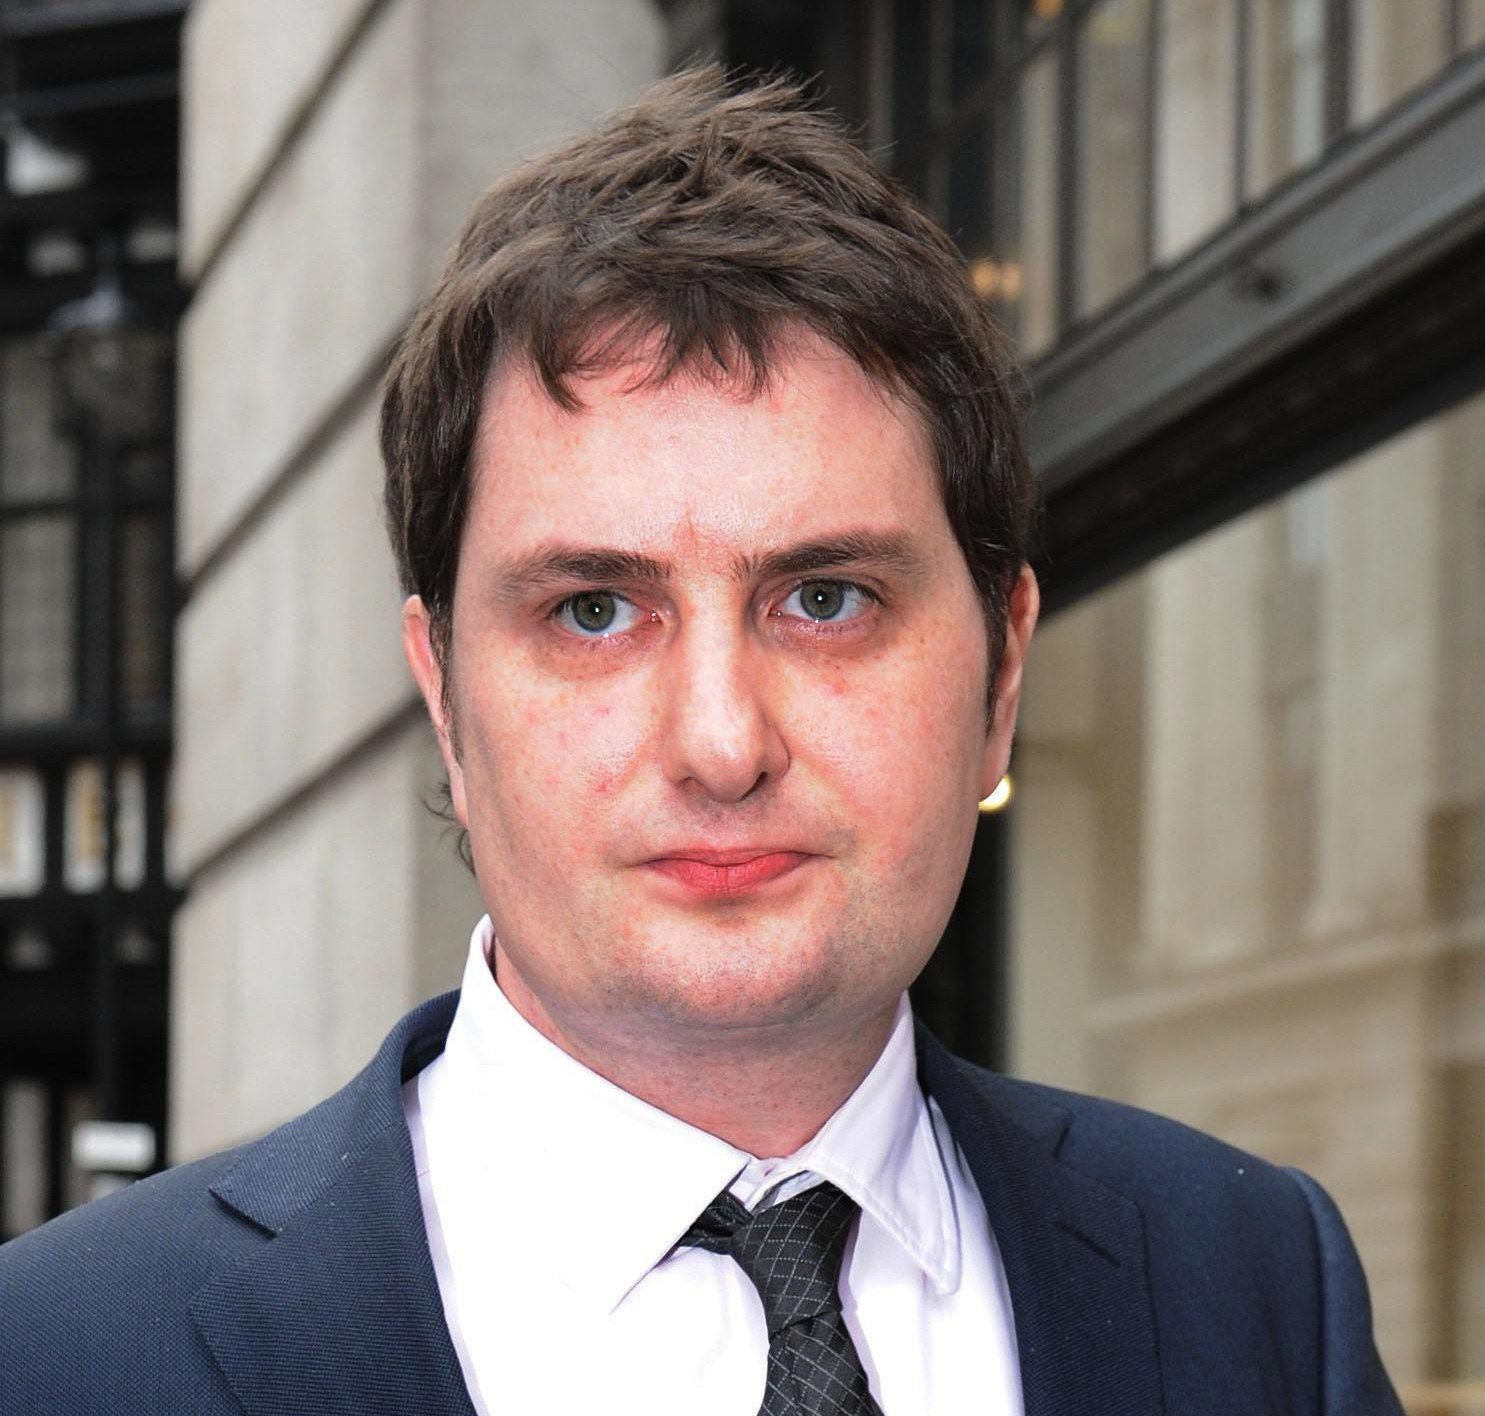 """File photo dated 24/02/10 of Dr Adam Osborne, brother of shadow chancellor George Osborne. The psychiatrist is back before the General Medical Council after he admitted having sex with a vulnerable patient who had been under his care, a disciplinary panel has heard. PRESS ASSOCIATION Photo. Issue date: Monday February 8, 2016. Dr Adam Osborne, who is currently suspended by the General Medical Council (GMC), admitted that he had engaged in an """"inappropriate"""" emotional and sexual relationship with the woman, despite being her private psychiatrist .See PA story HEALTH Osborne. Photo credit should read: Fiona Hanson/PA Wire"""